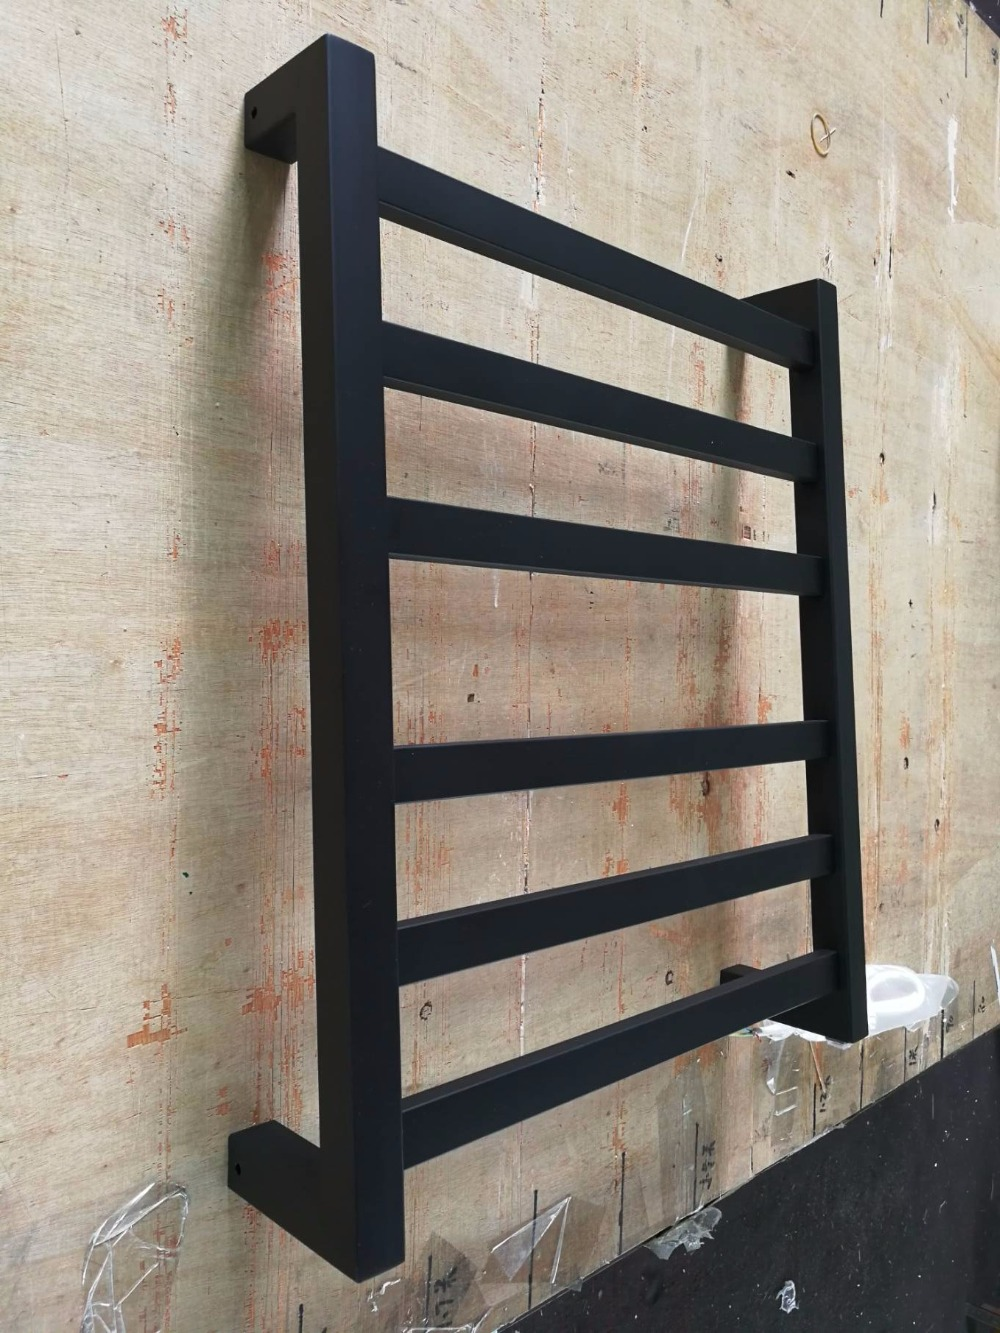 Free Shipping Stainless Steel Electric Wall Mounted Towel Warmer Bathroom Accessories Racks Black Heated Towel Rail HZ 942B in Sanitary Ware Suite from Home Improvement